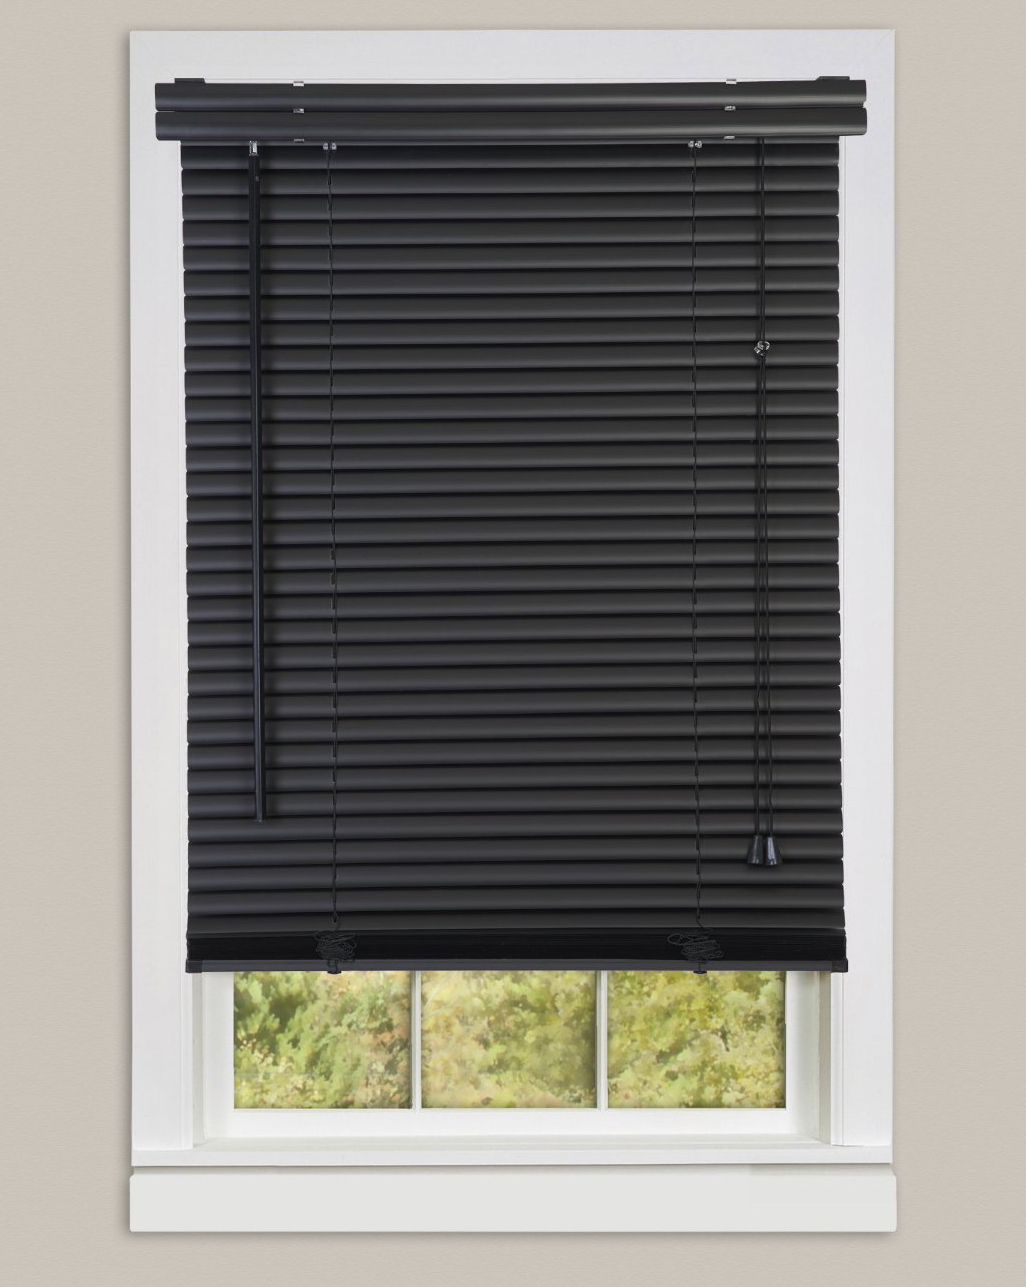 window blinds mini blind 1 slat vinyl venetian blinds black white beige gray ebay. Black Bedroom Furniture Sets. Home Design Ideas